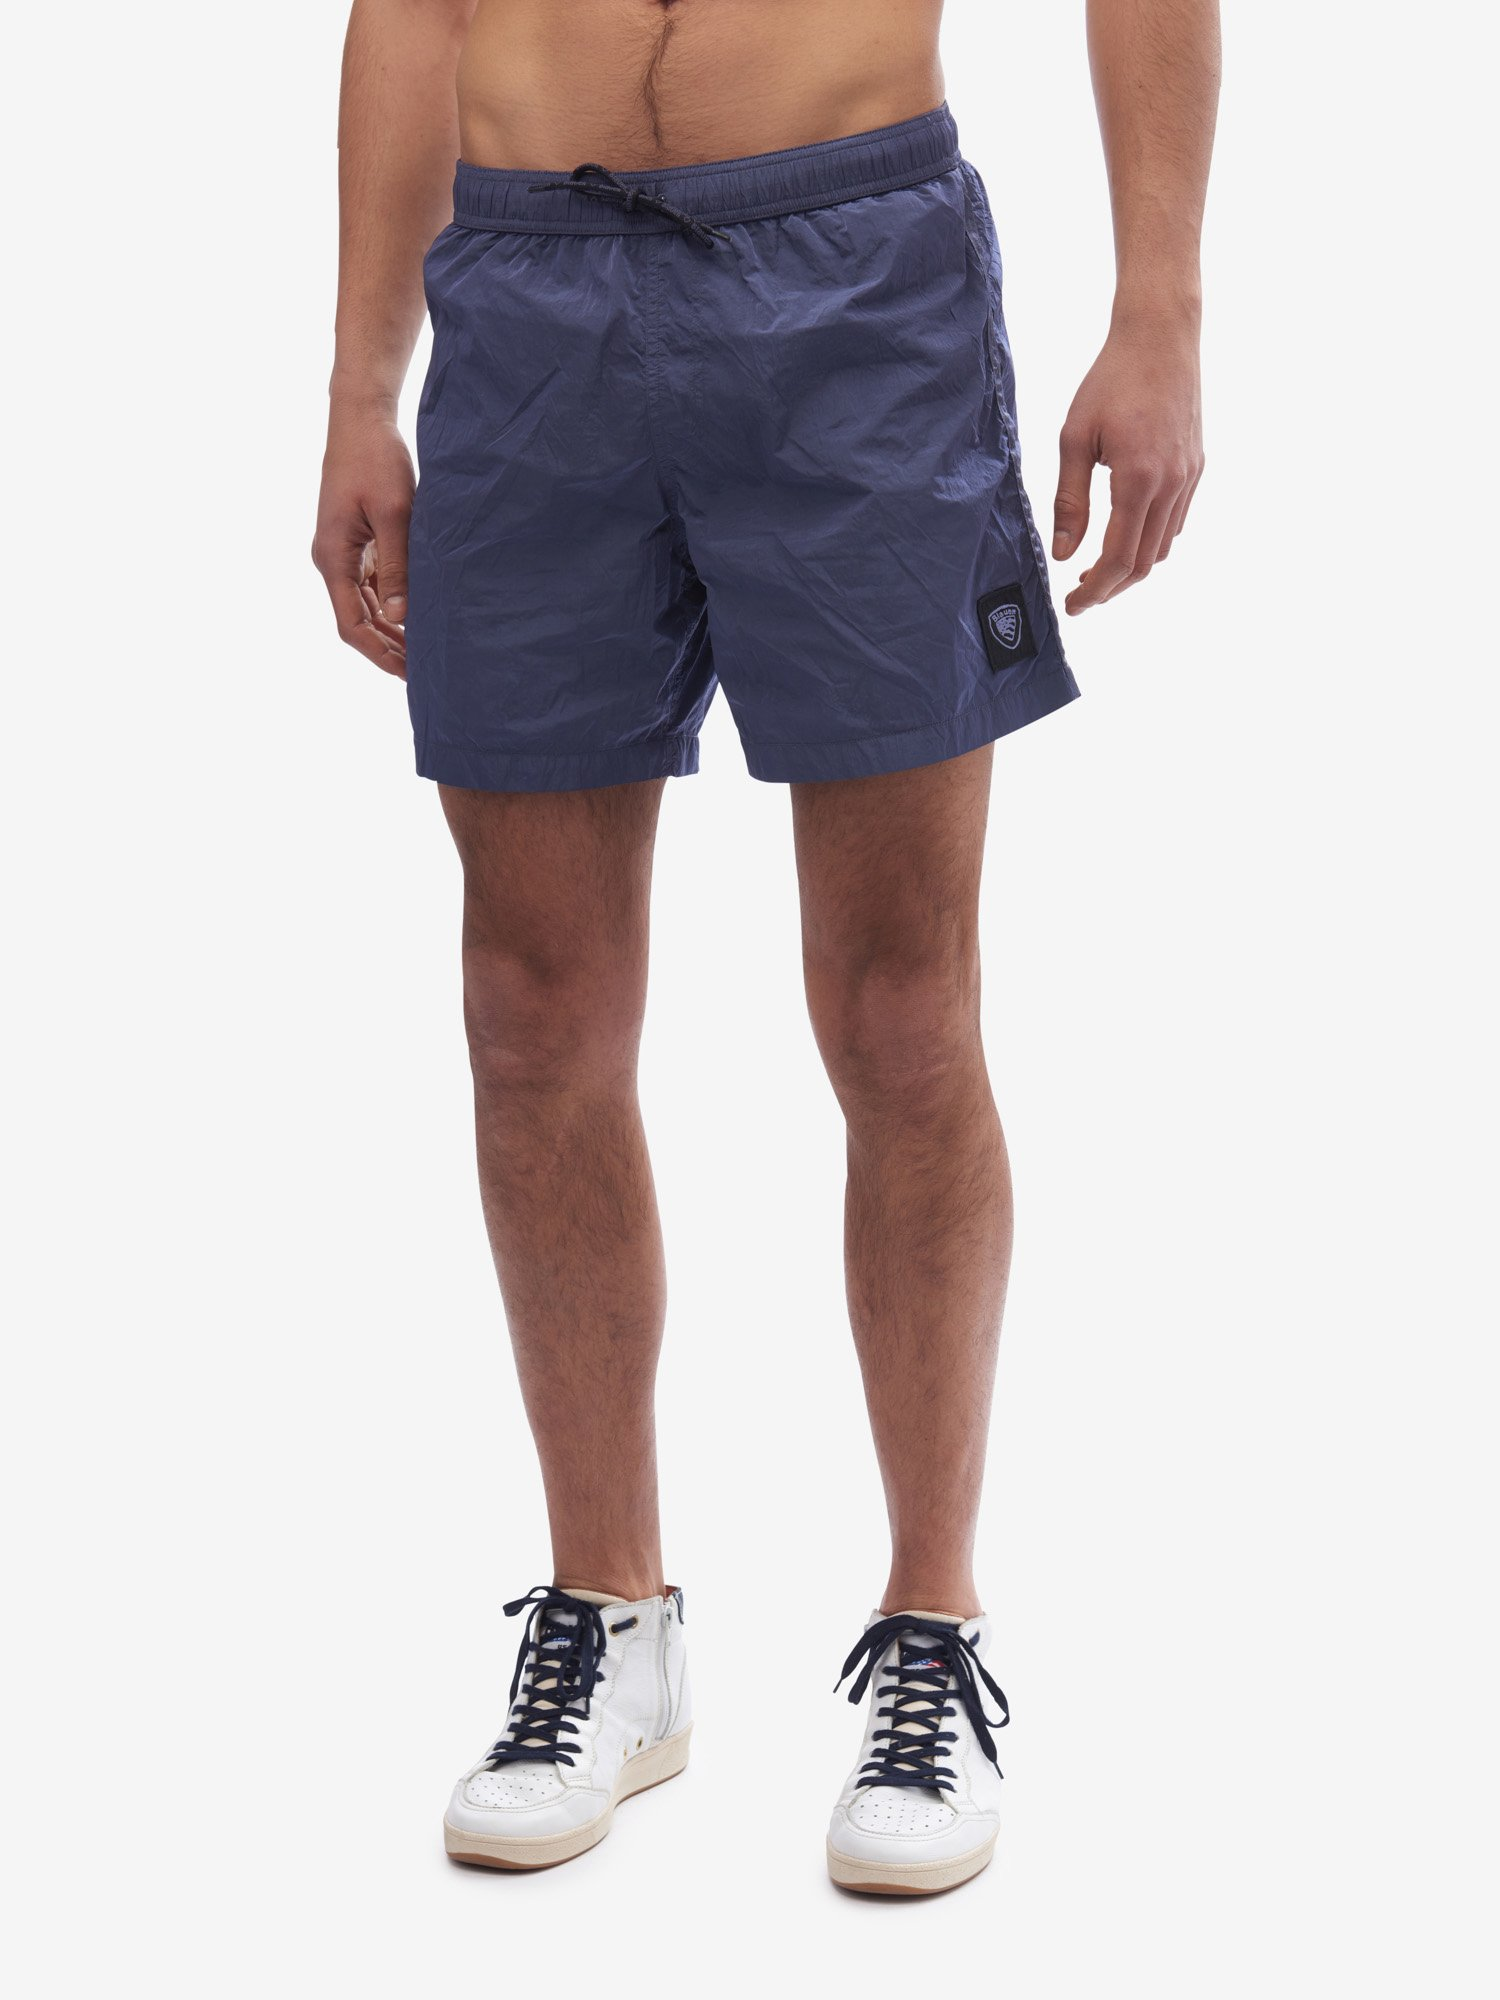 BOXER  TINTO IN CAPO OLD - Blauer